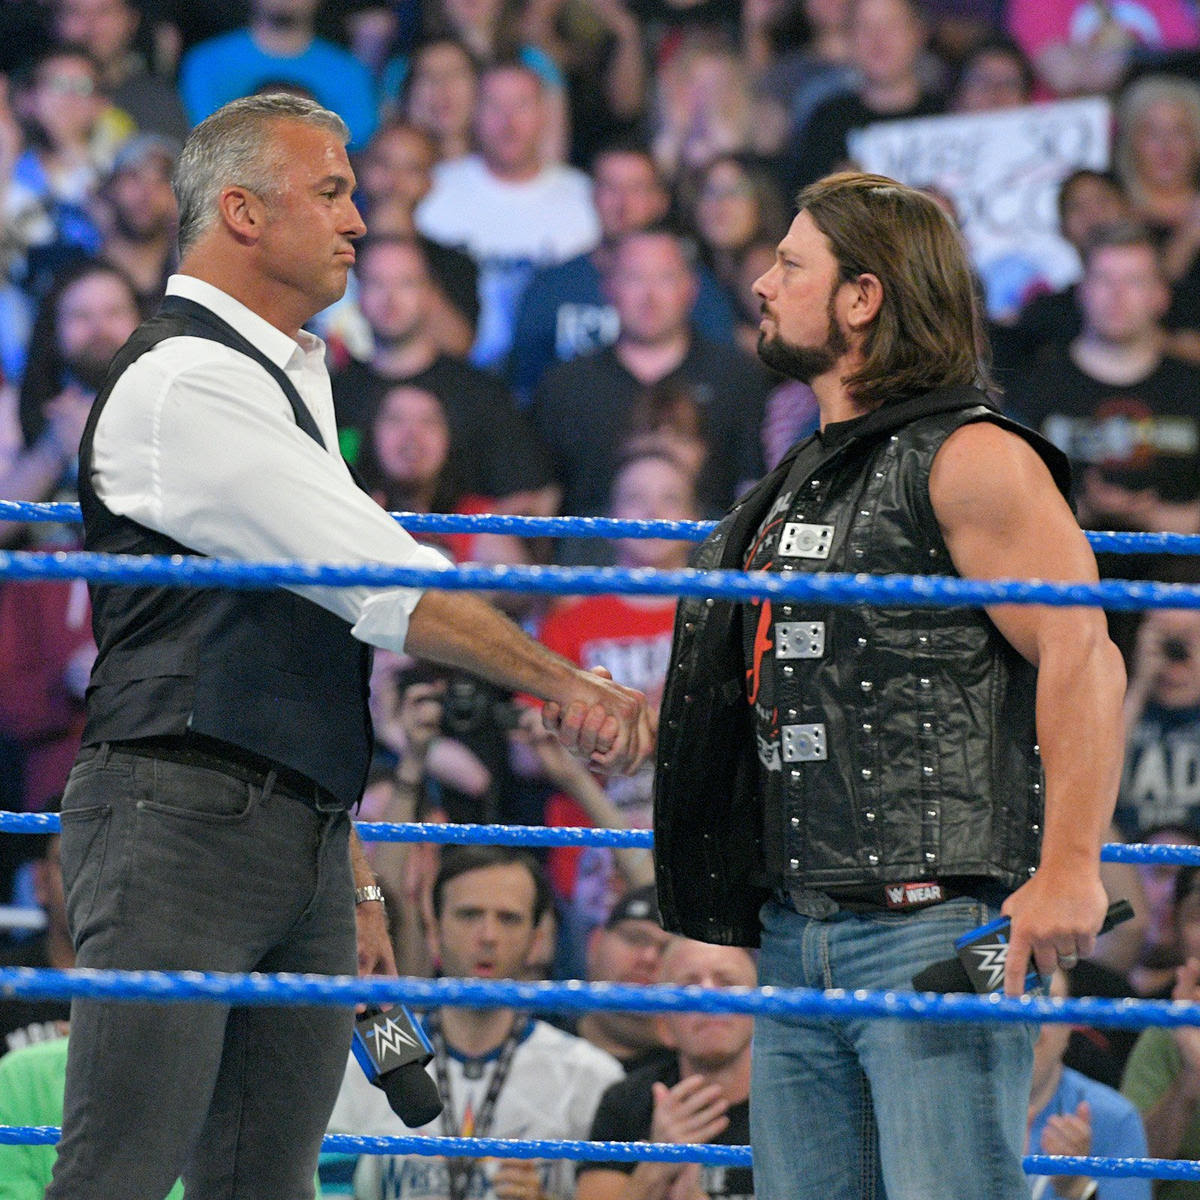 Shane and Styles shake hands two days after their epic clash at The Ultimate Thrill Ride.